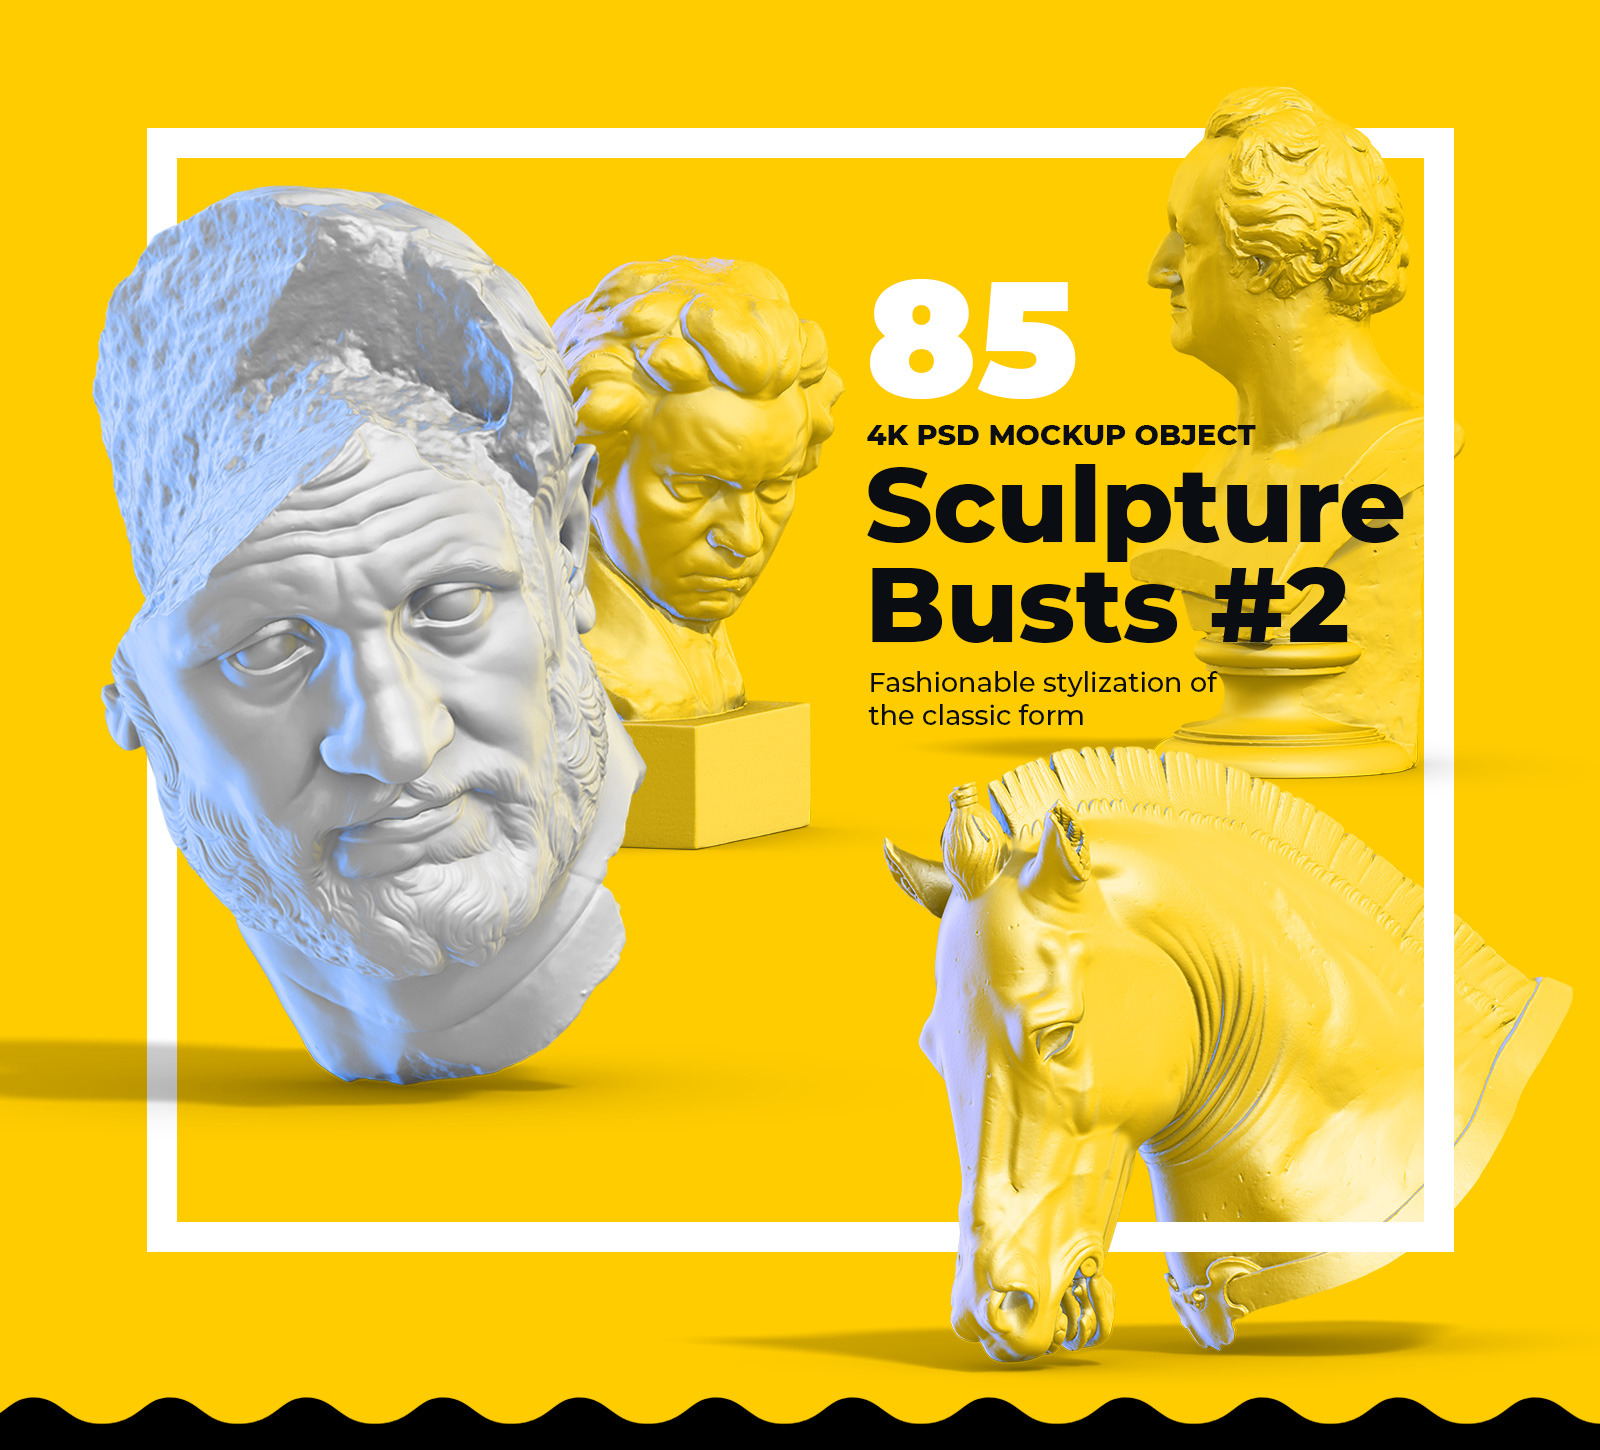 Collection of 85  Sculptures Busts #2, for branding and design of your product